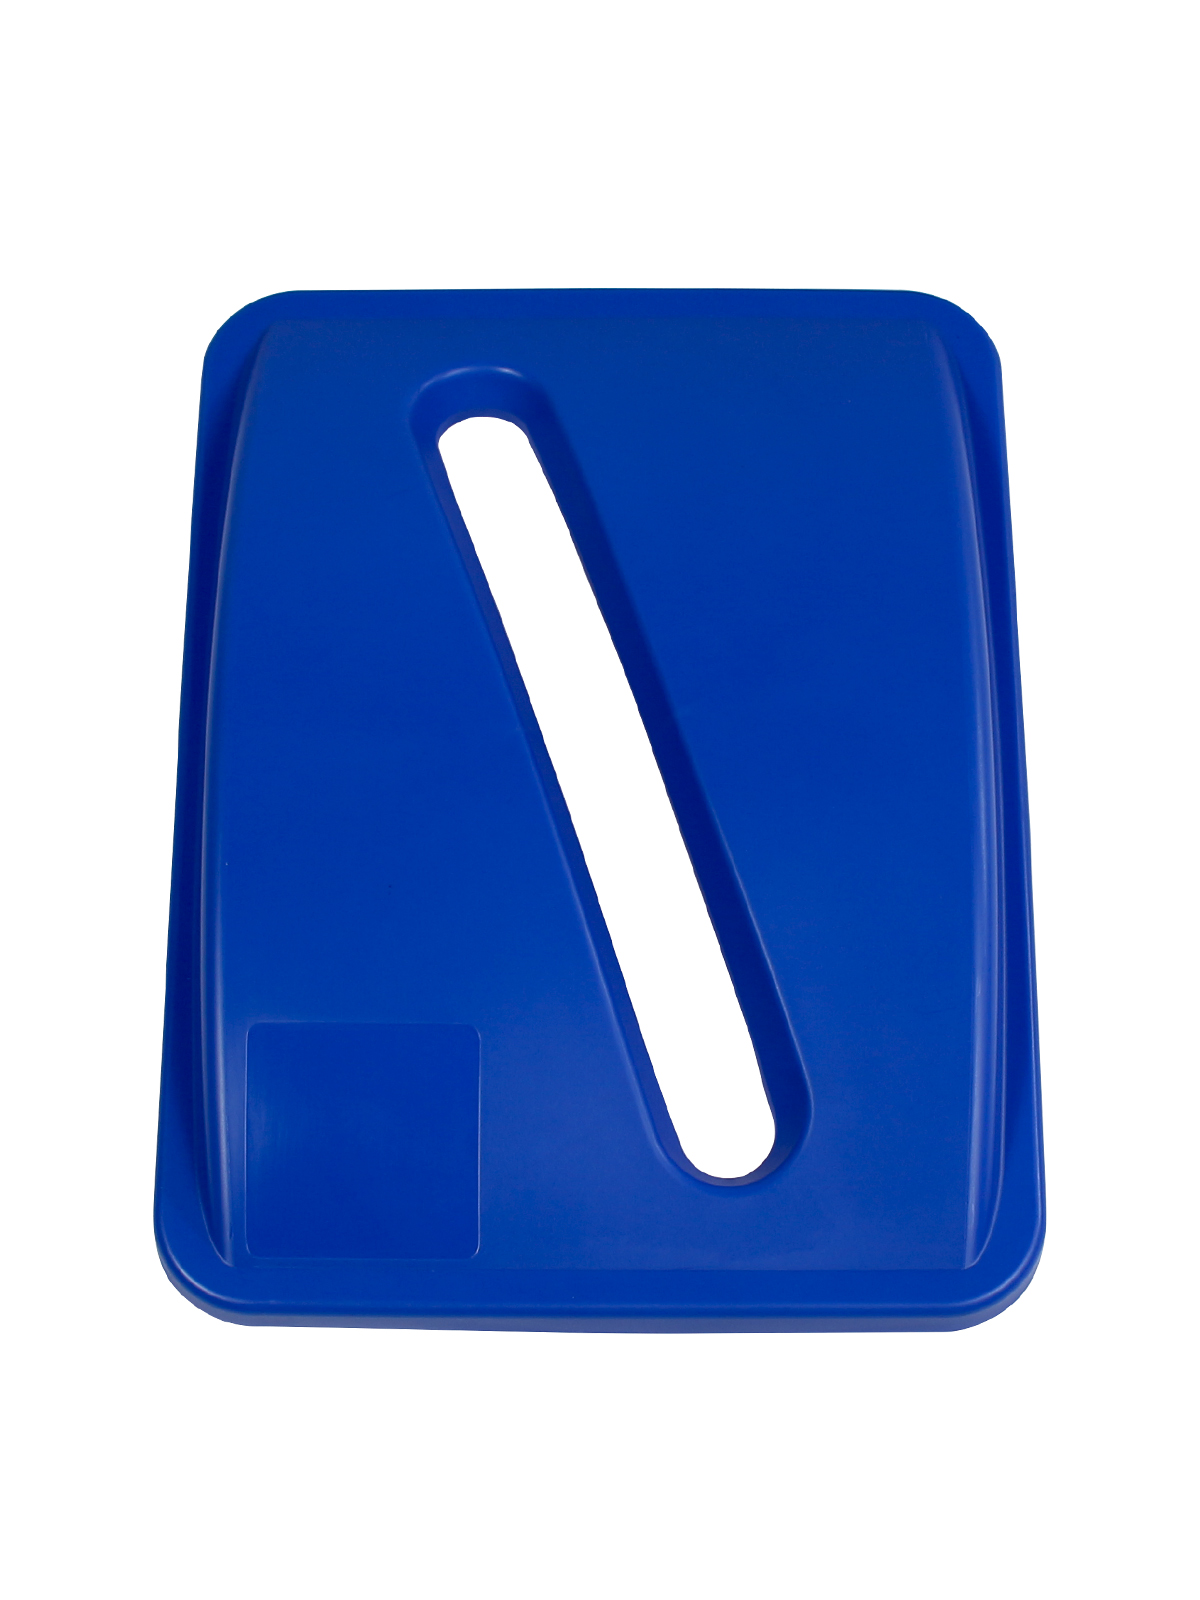 WASTE WATCHER® XL - LID - SLOT OPENING - ROYAL BLUE title=